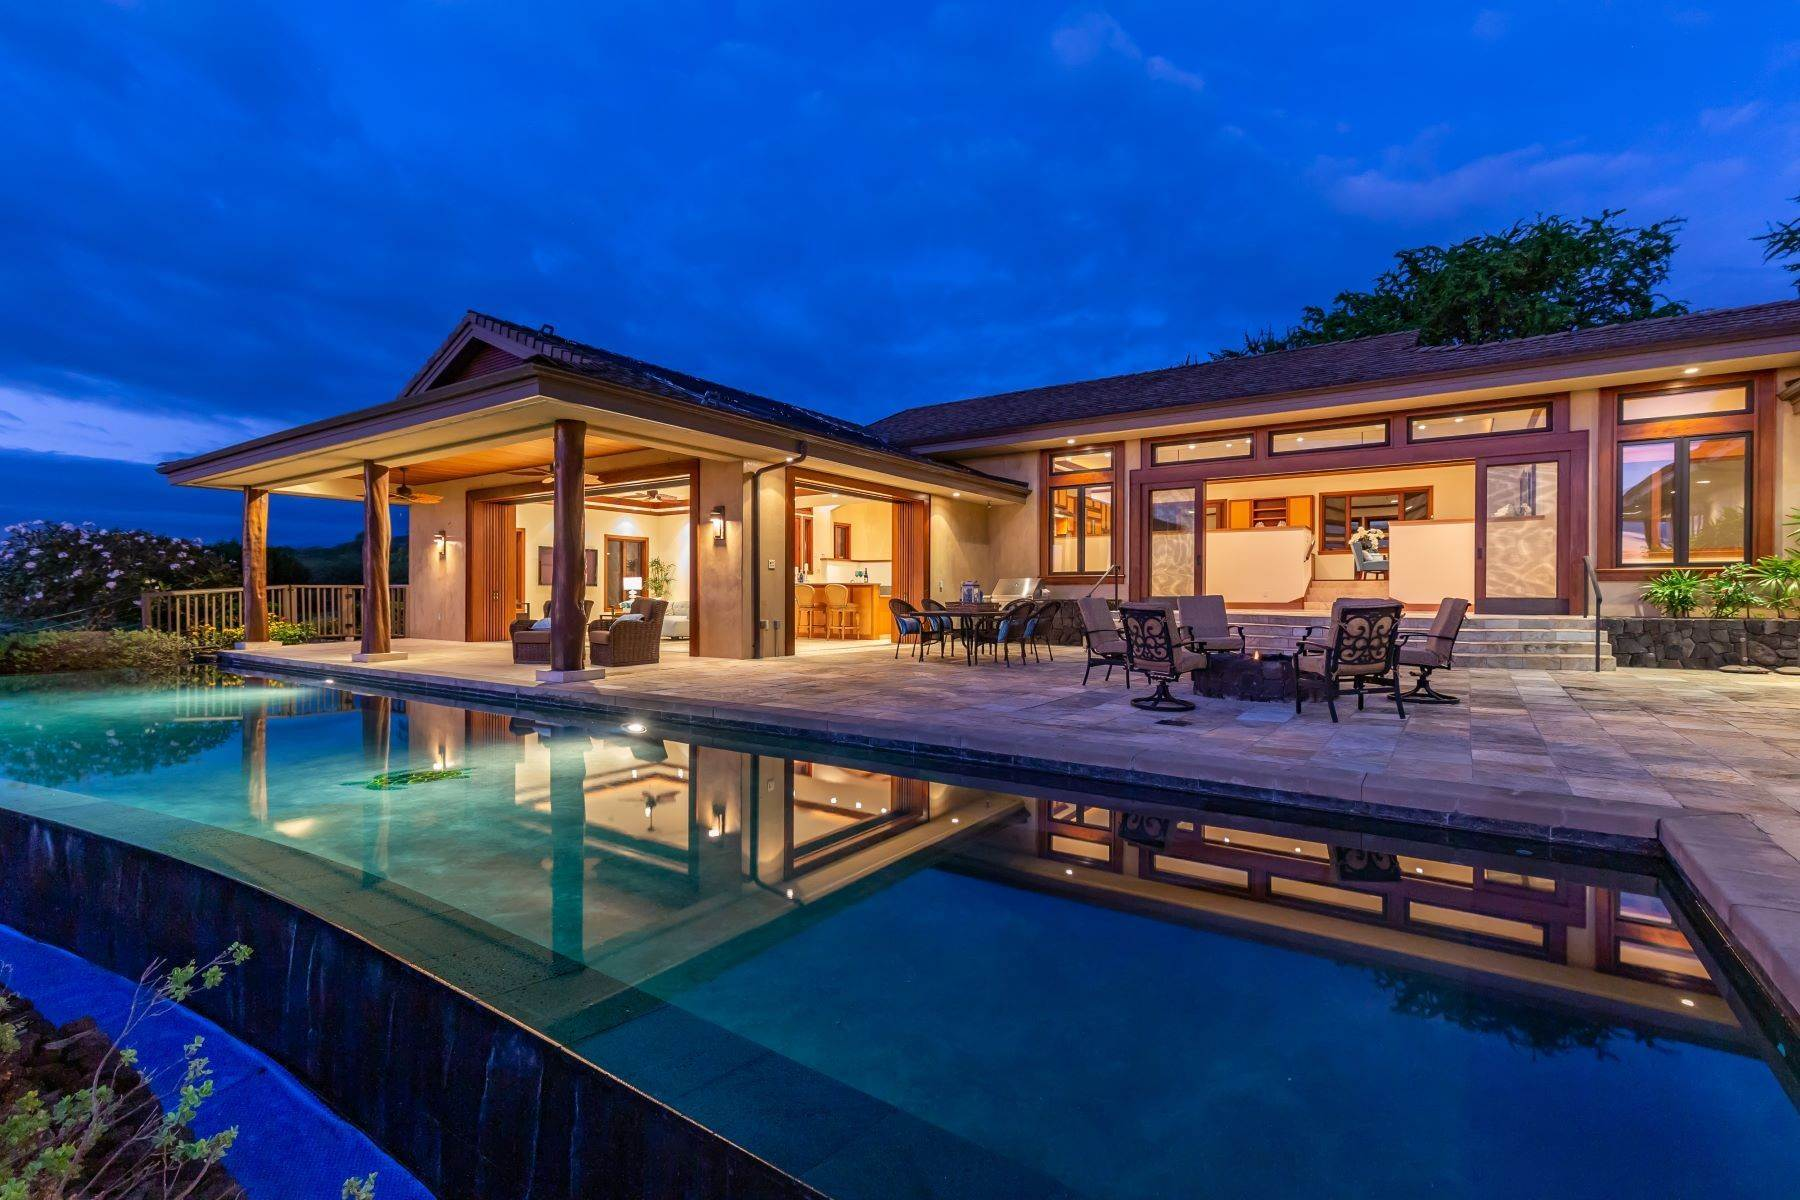 Single Family Homes for Sale at 81-580 Kaiue St, Kealakekua, HI 96750 81-580 Kaiue St Kealakekua, Hawaii 96750 United States